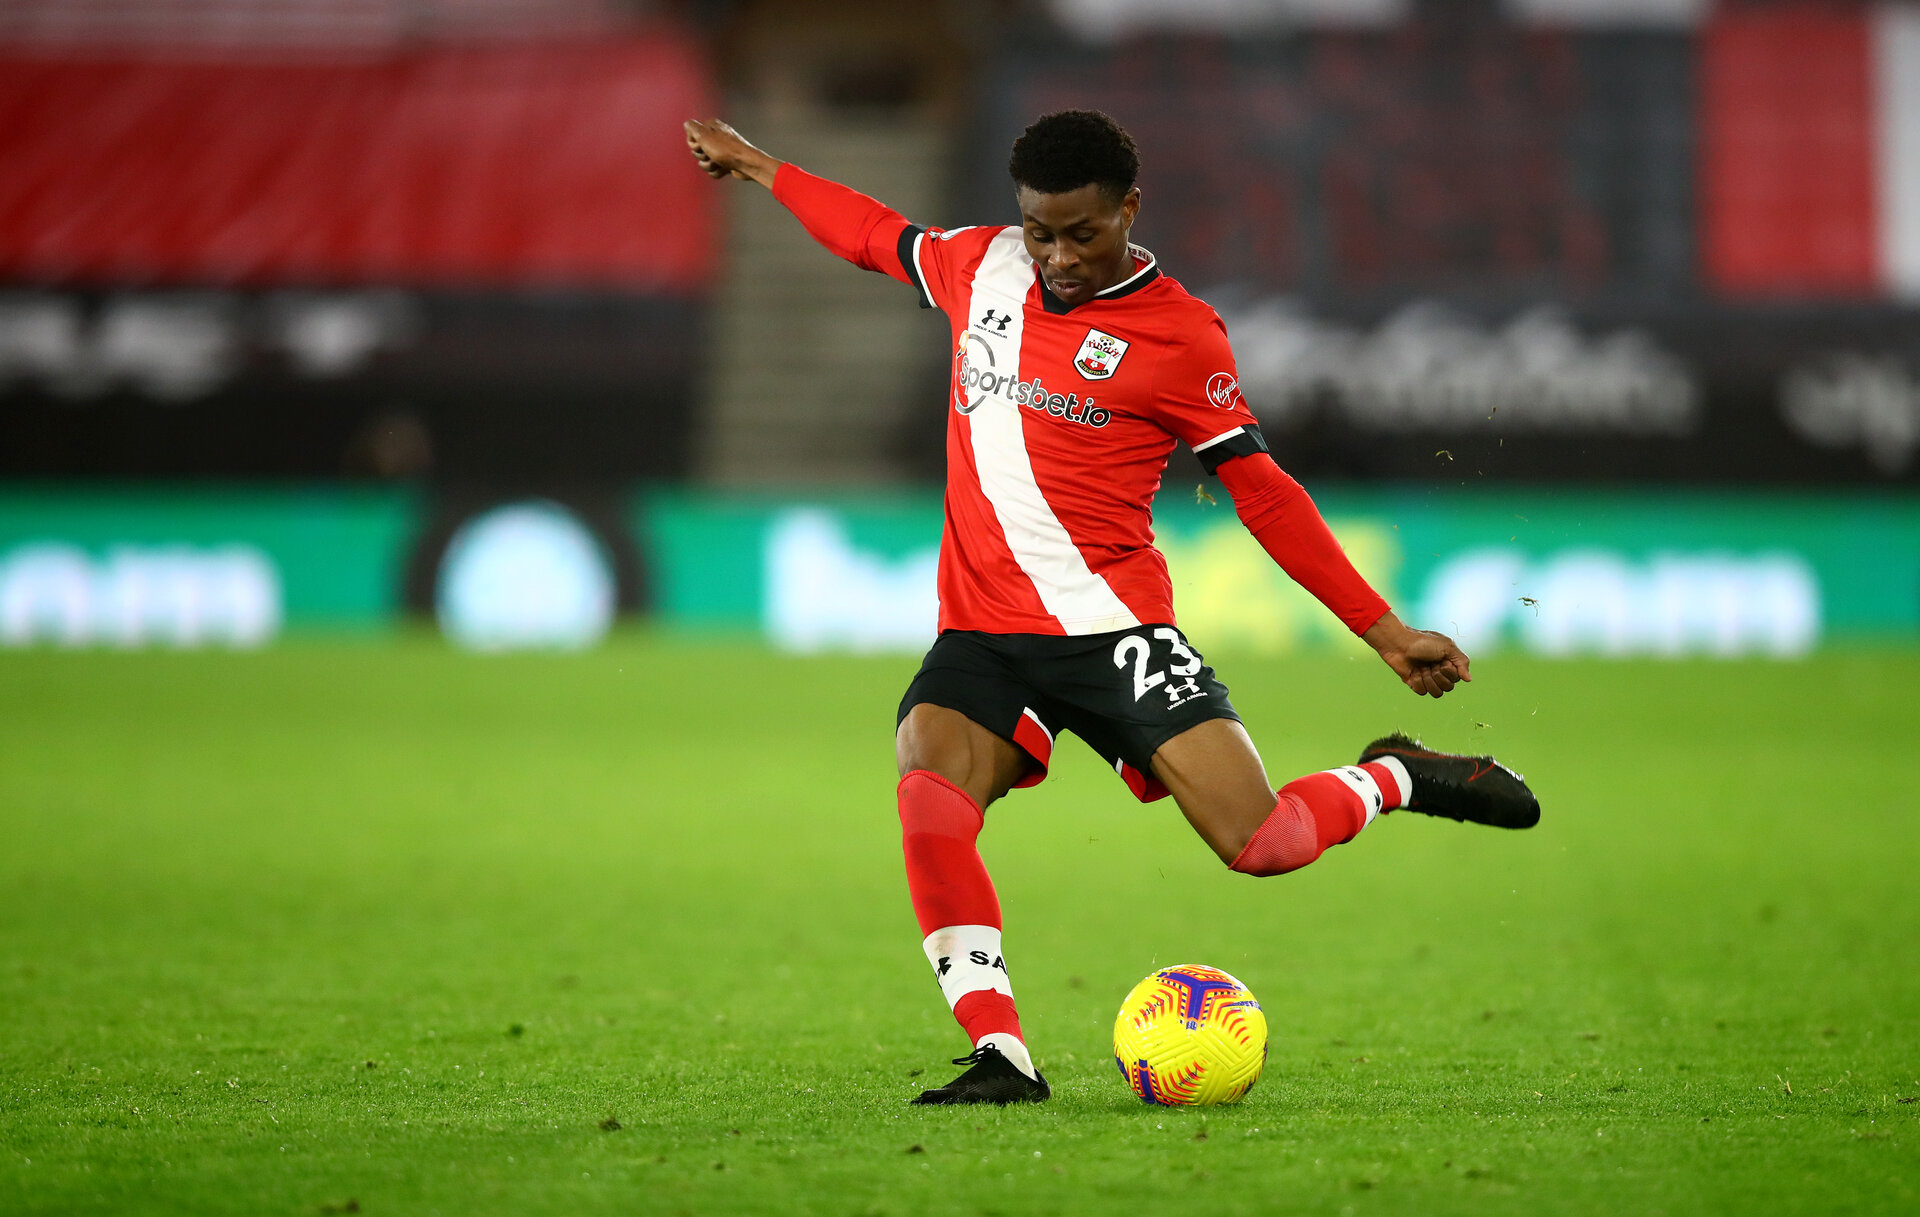 SOUTHAMPTON, ENGLAND - DECEMBER 19: Nathan Tella of Southampton during the Premier League match between Southampton and Manchester City at St Mary's Stadium on December 19, 2020 in Southampton, England. A limited number of fans (2000) are welcomed back to stadiums to watch elite football across England. This was following easing of restrictions on spectators in tiers one and two areas only. (Photo by Matt Watson/Southampton FC via Getty Images)